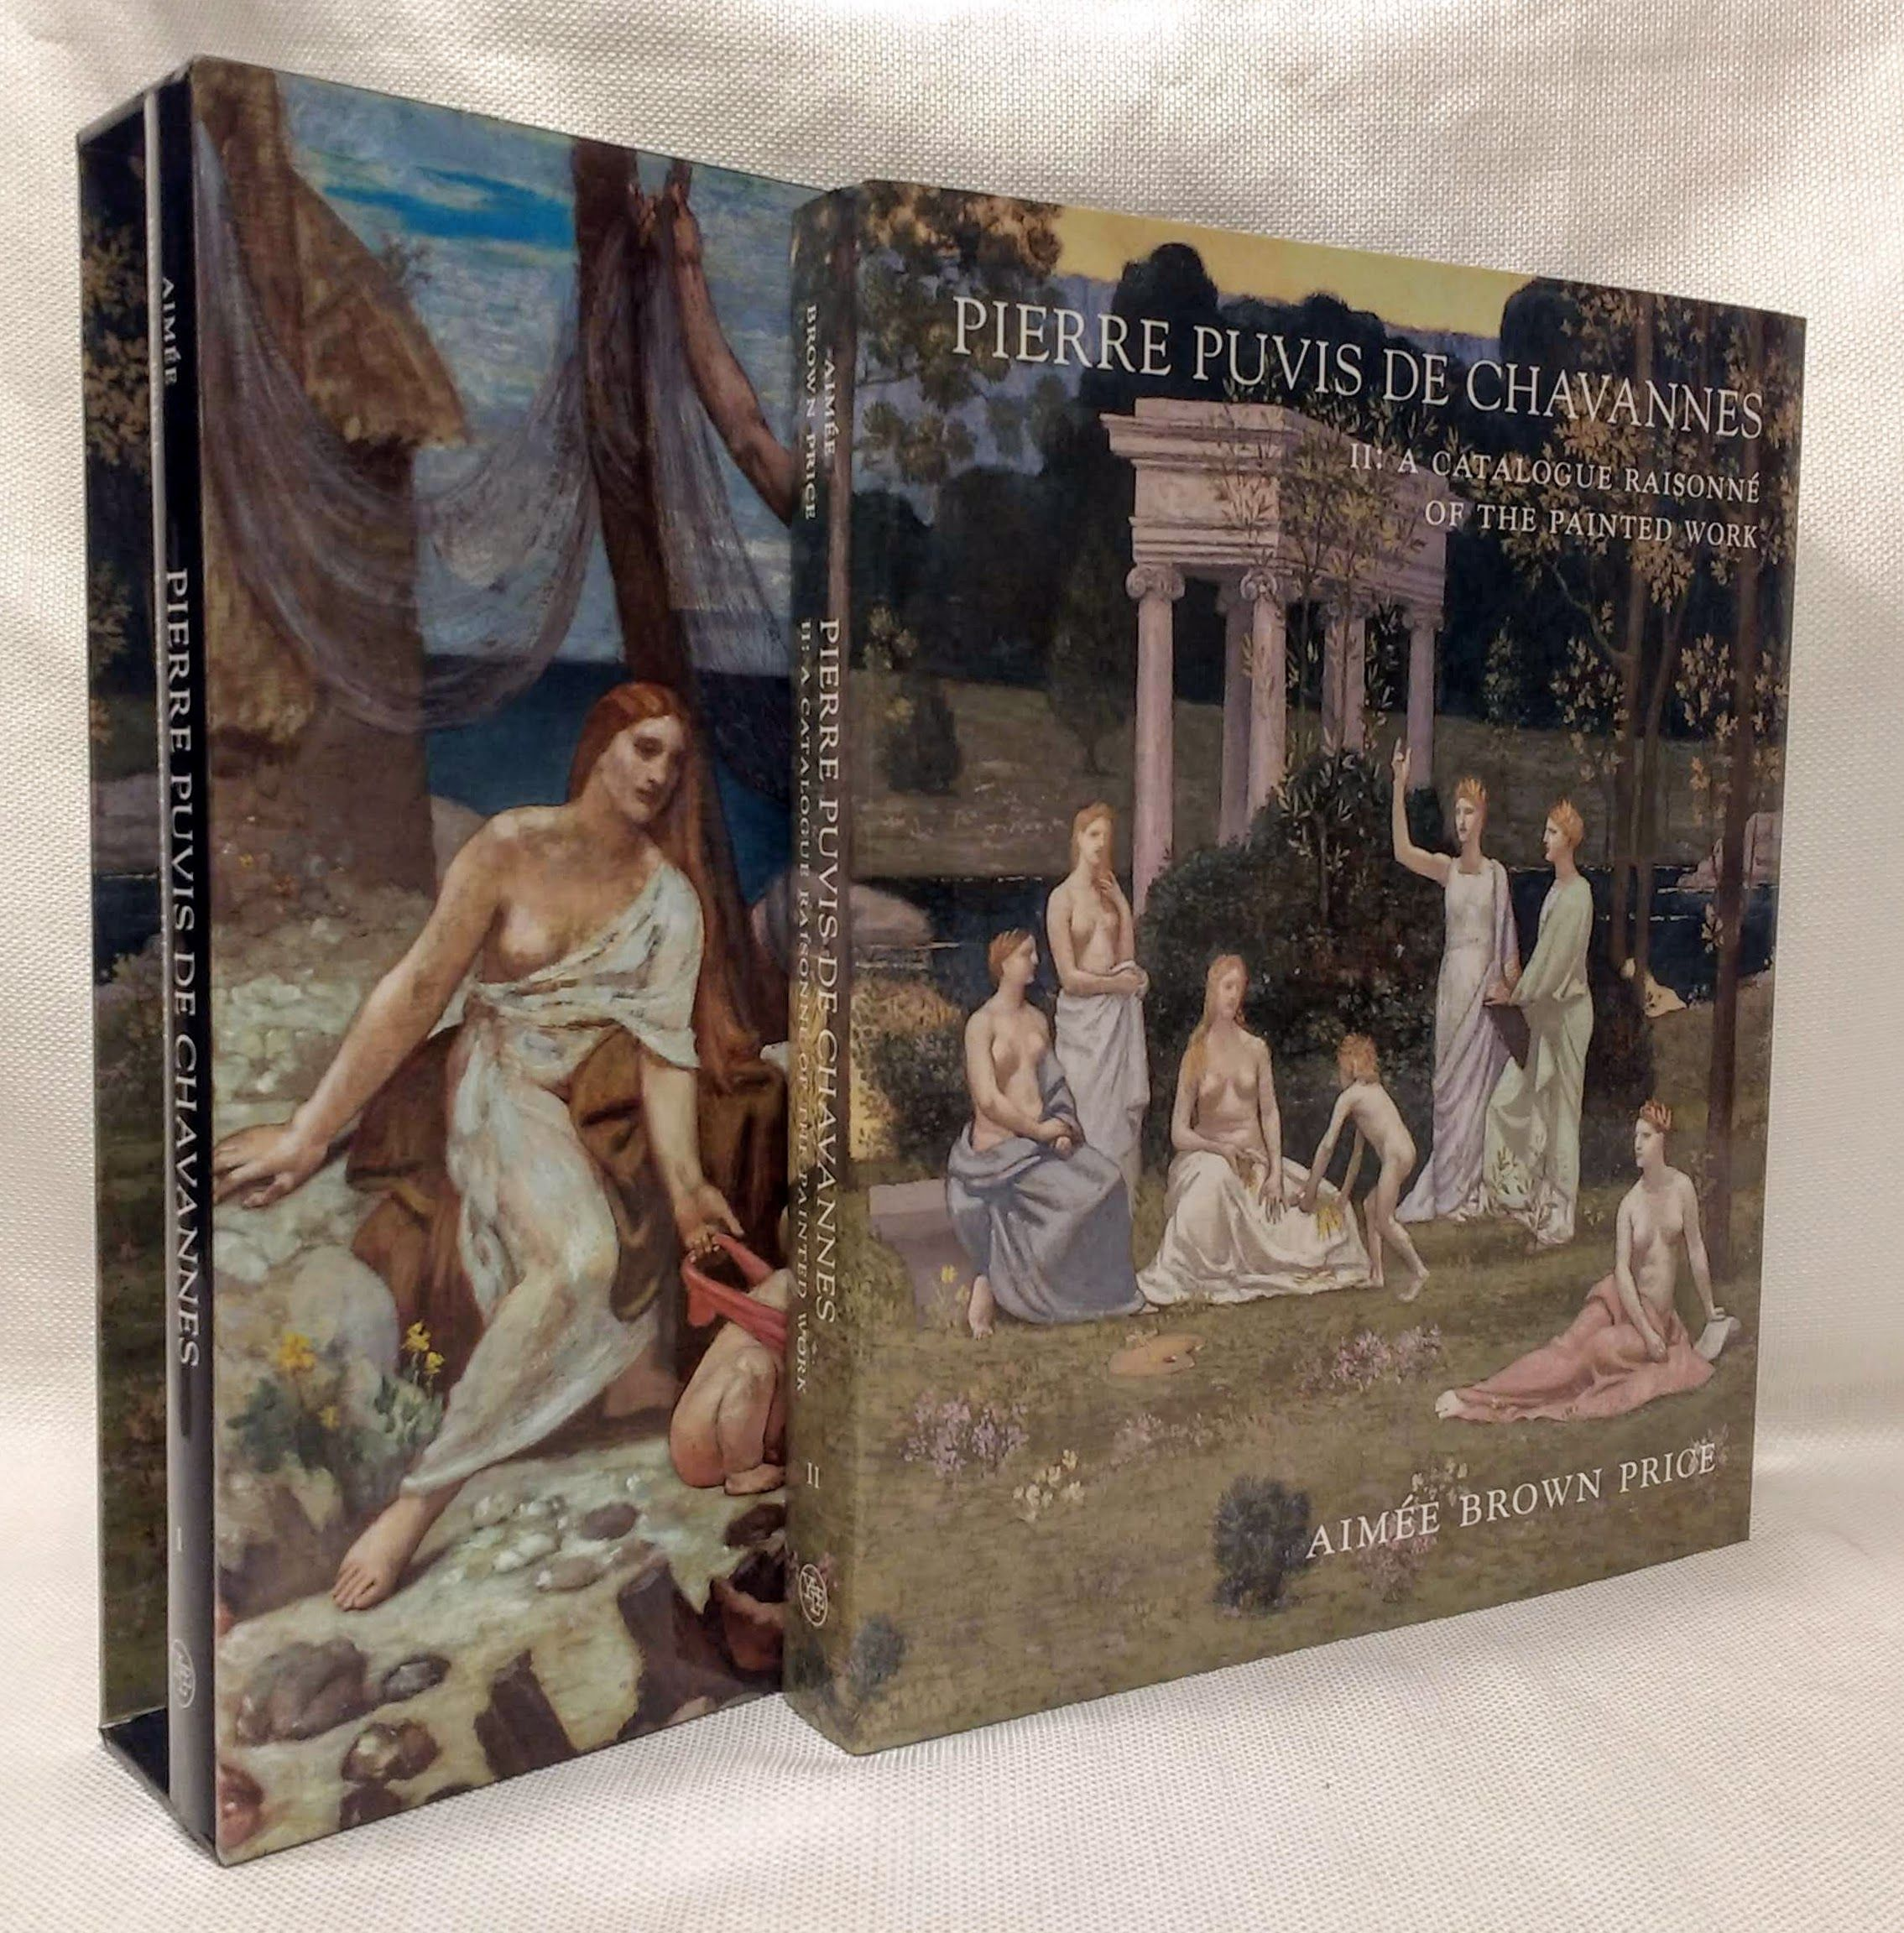 Pierre Puvis de Chavannes, Brown Price, Aim�©e